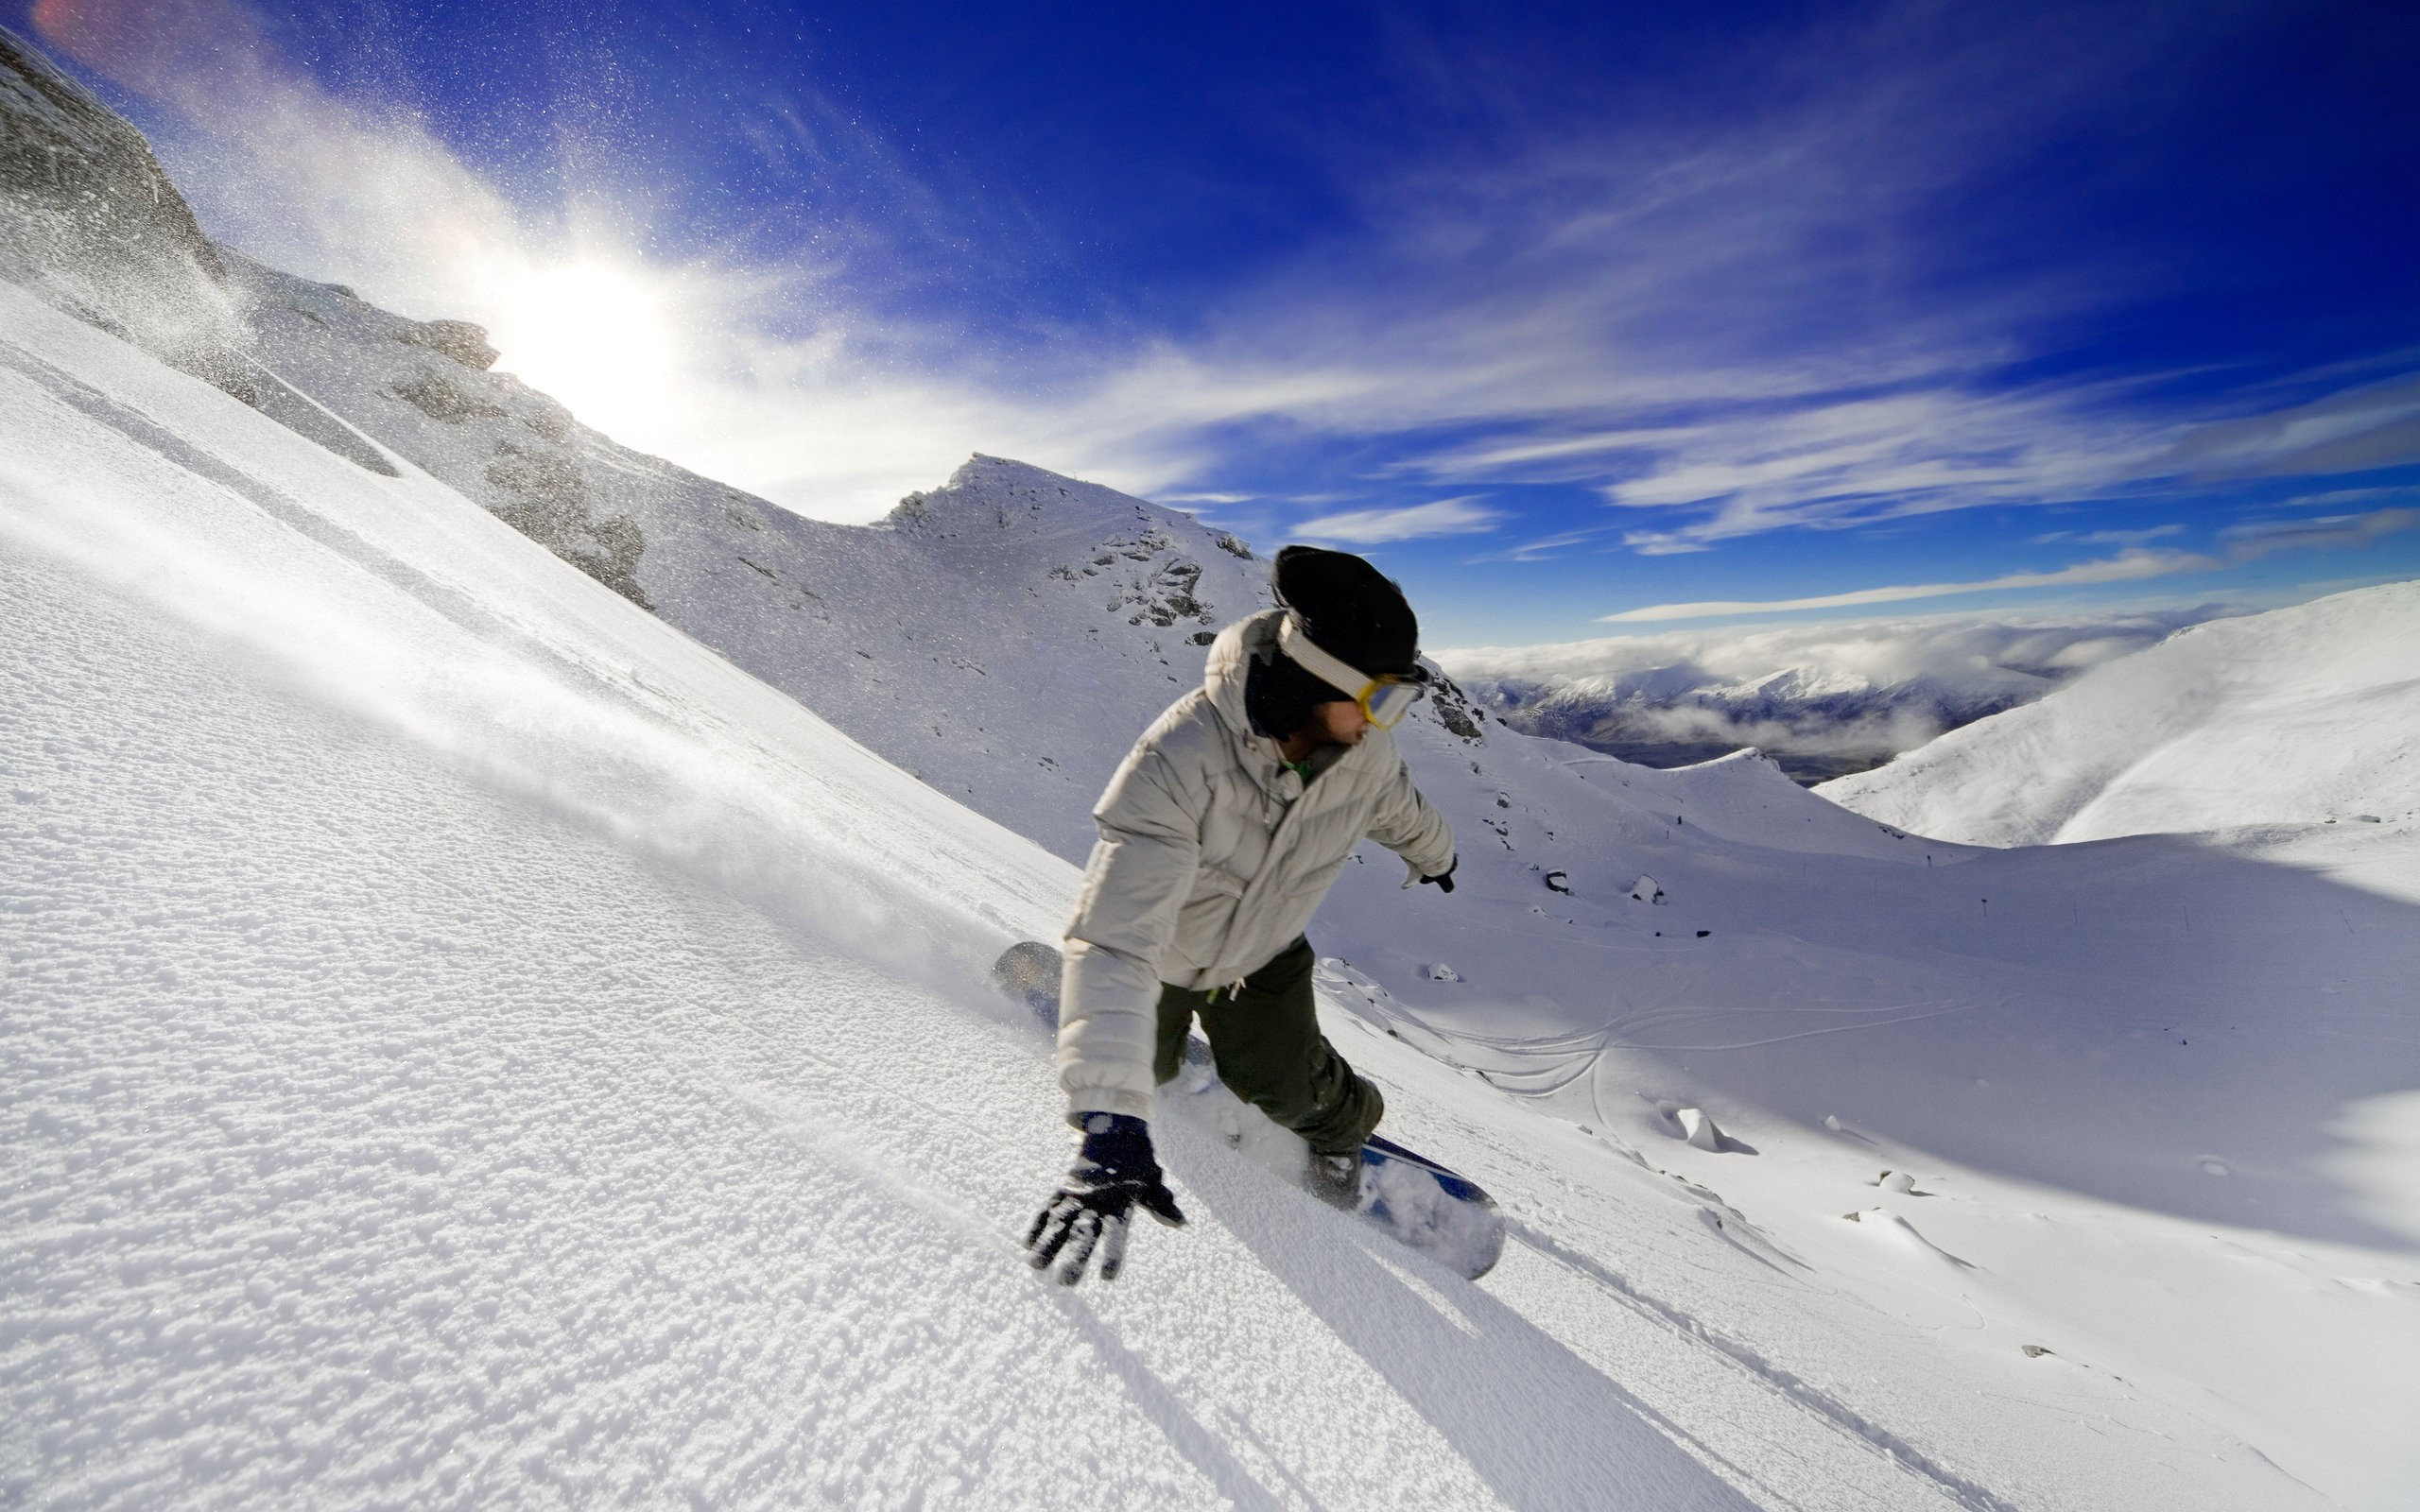 extreme snowboarding wallpapers - photo #25